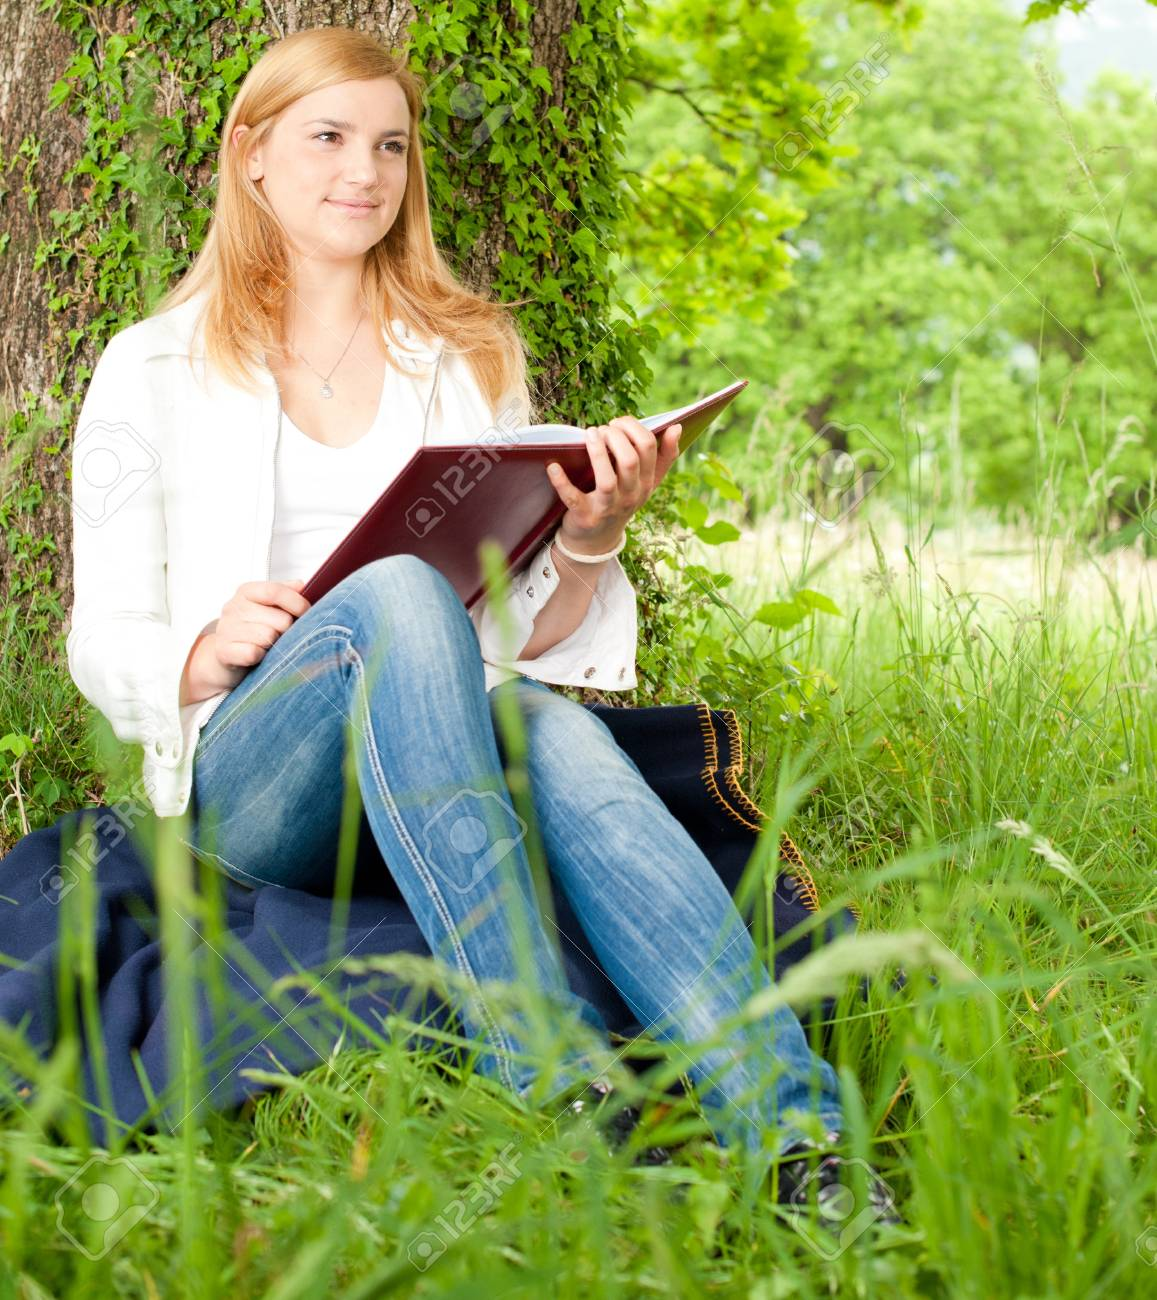 Beautiful young woman reading a book outdoors on a grass field in park Stock Photo - 9515995